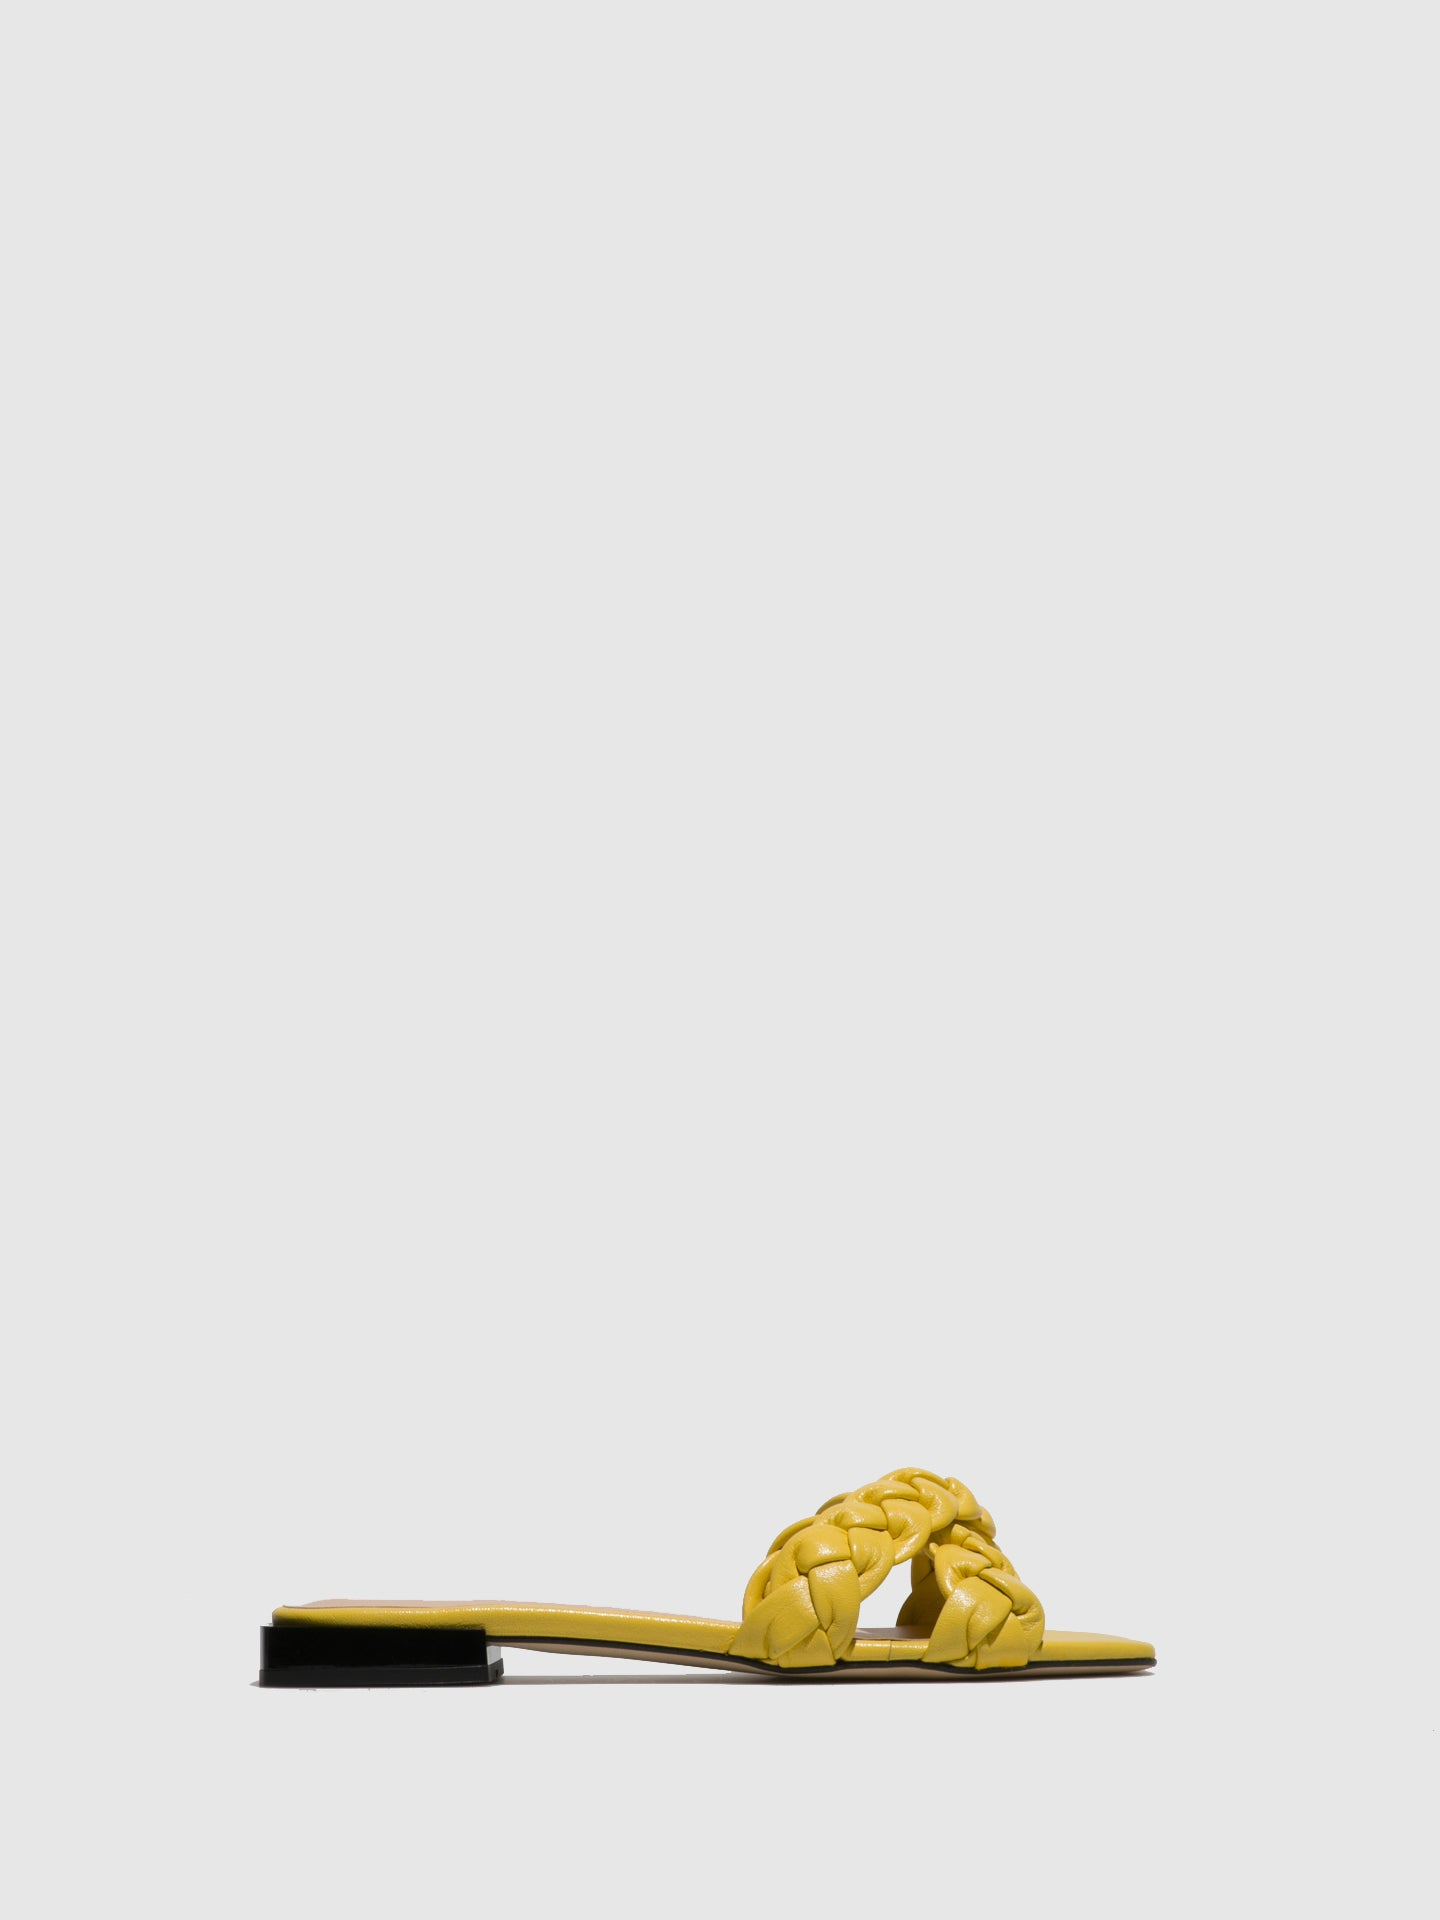 Sofia Costa Yellow Flat Sandals